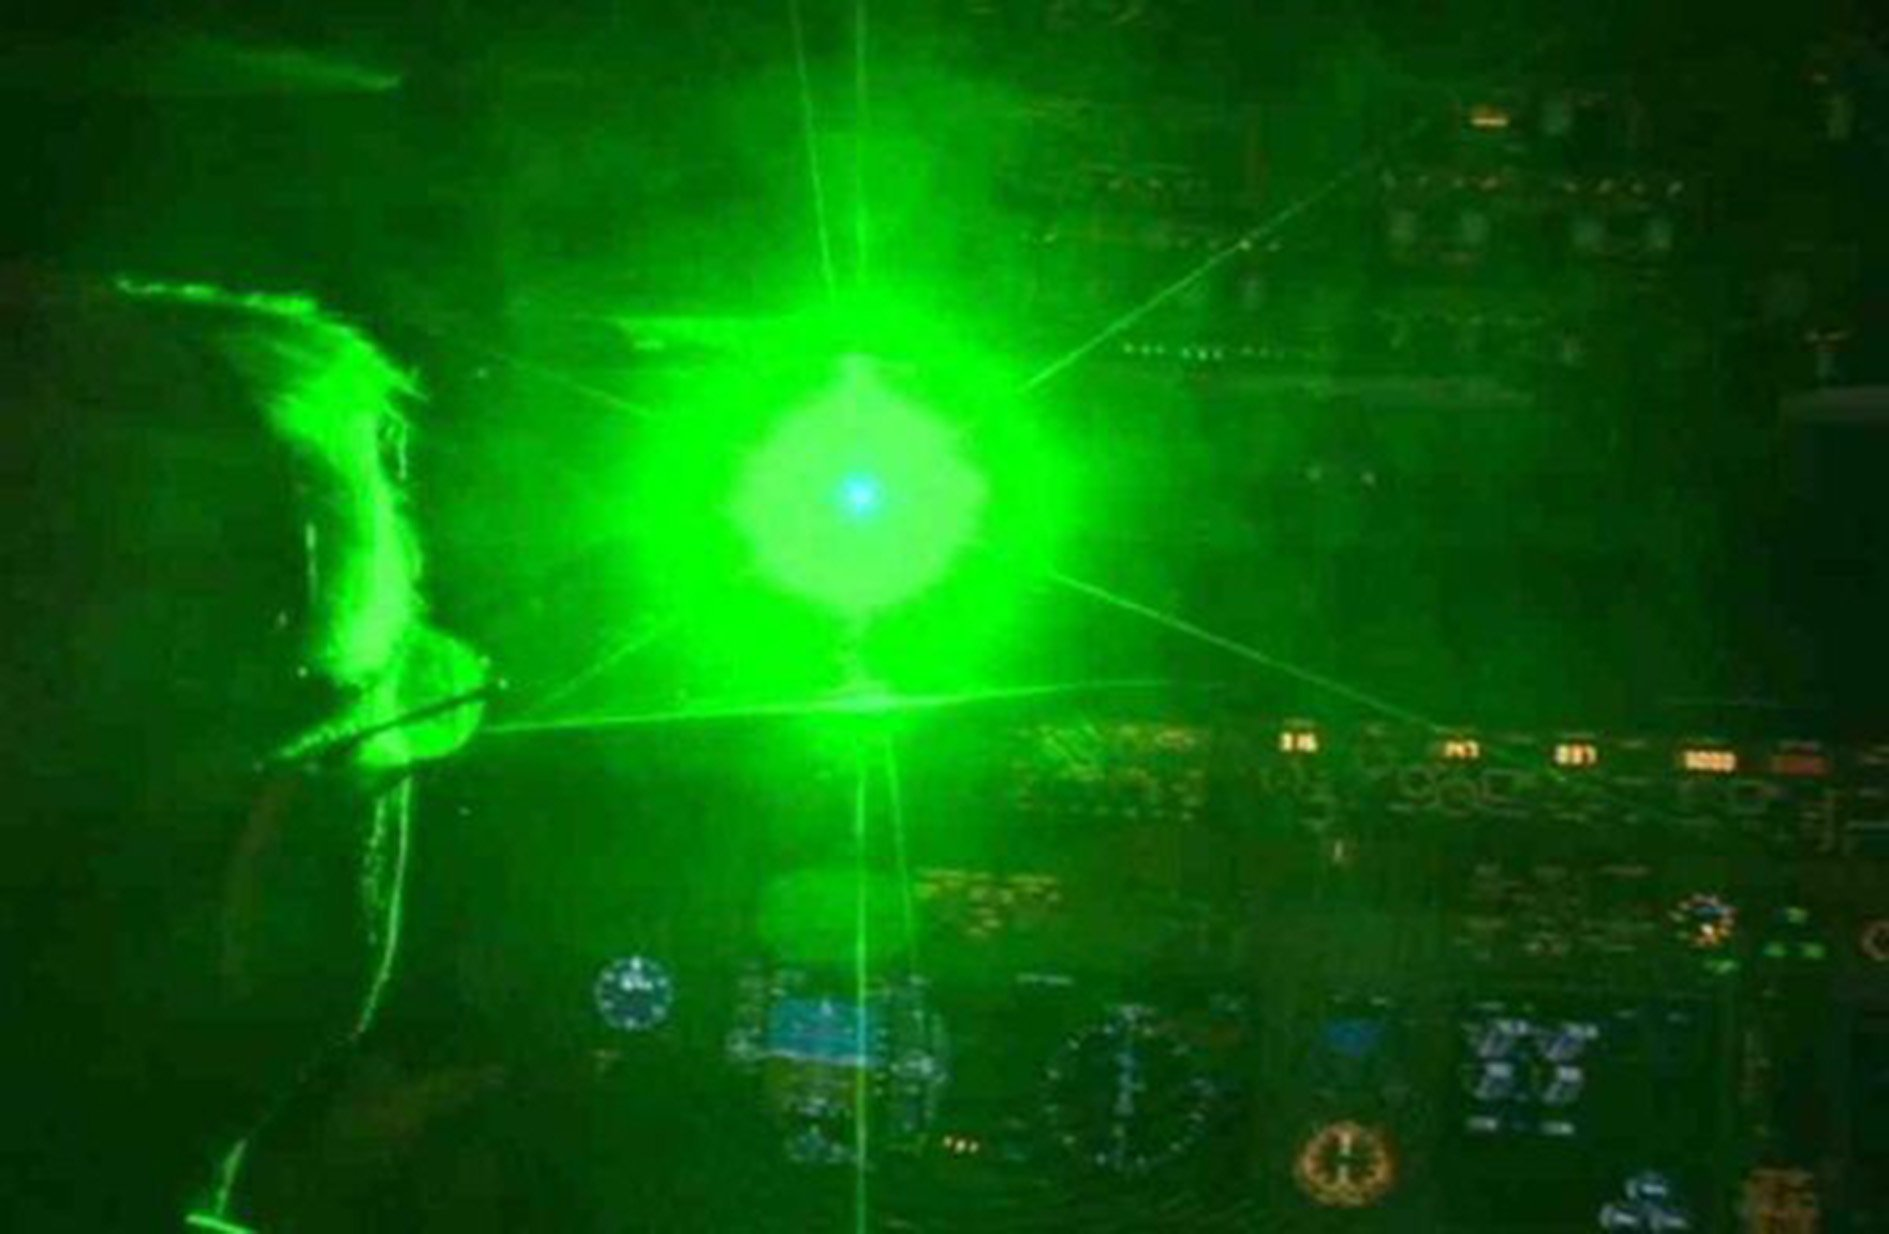 """This is what happens when a laser is shone at the cockpit of a passenger jet, police warned today 2/2/16. See NATIONAL copy NNLASER. Scotland Yard is currently investigating four incidents - the latest last Saturday - when lasers were shone at flights near Heathrow potentially dazzling the pilots. Officers stressed how dangerous it was to point lasers at incoming flights - and advised people to """"get another hobby."""" MPS Heathrow said: """"Endangering an aircraft in flight is a very serious offence. Maximum sentence is LIFE imprisonment."""""""